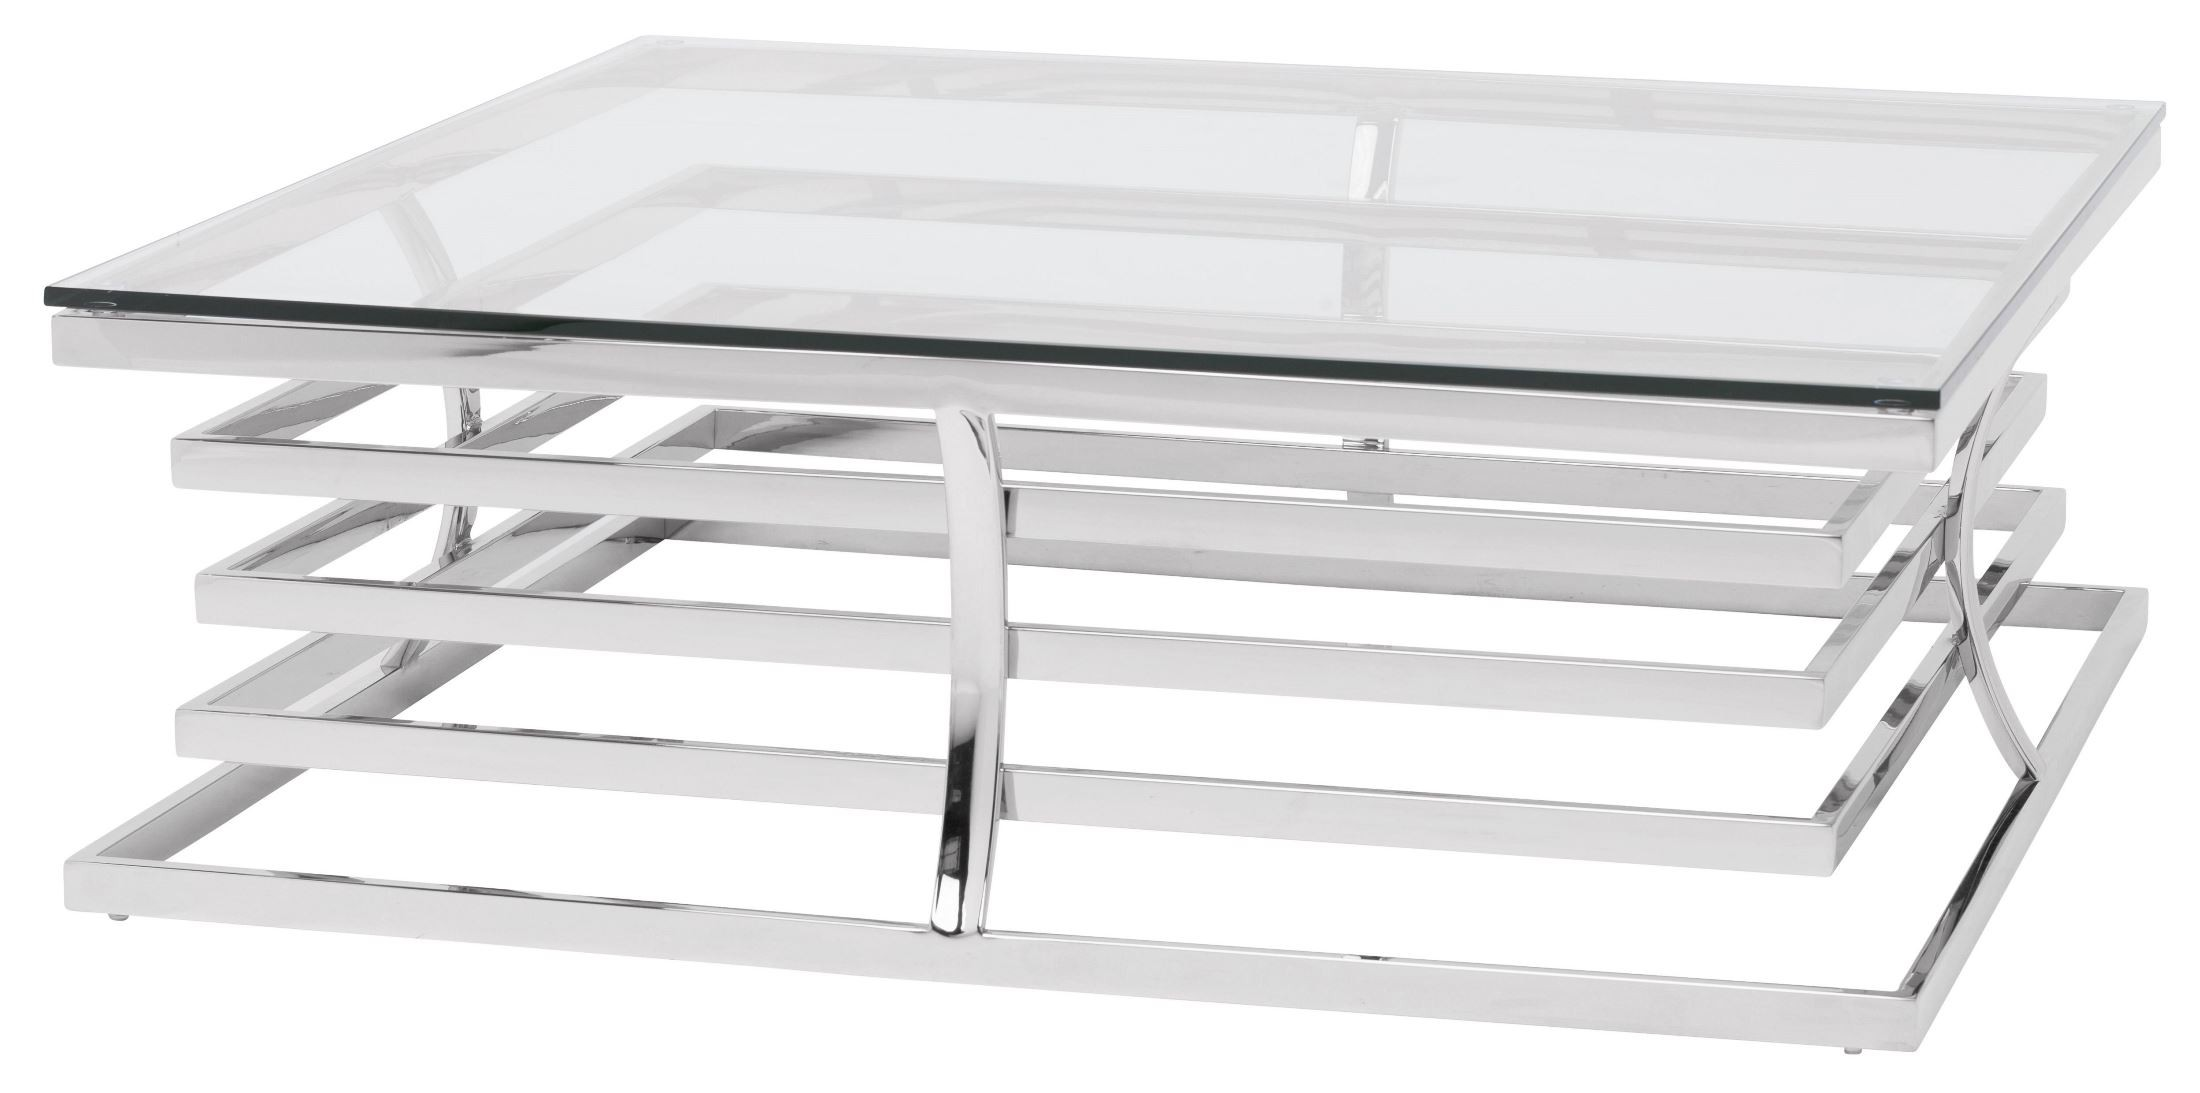 qubix clear glass and silver metal coffee table from nuevo coleman furniture. Black Bedroom Furniture Sets. Home Design Ideas